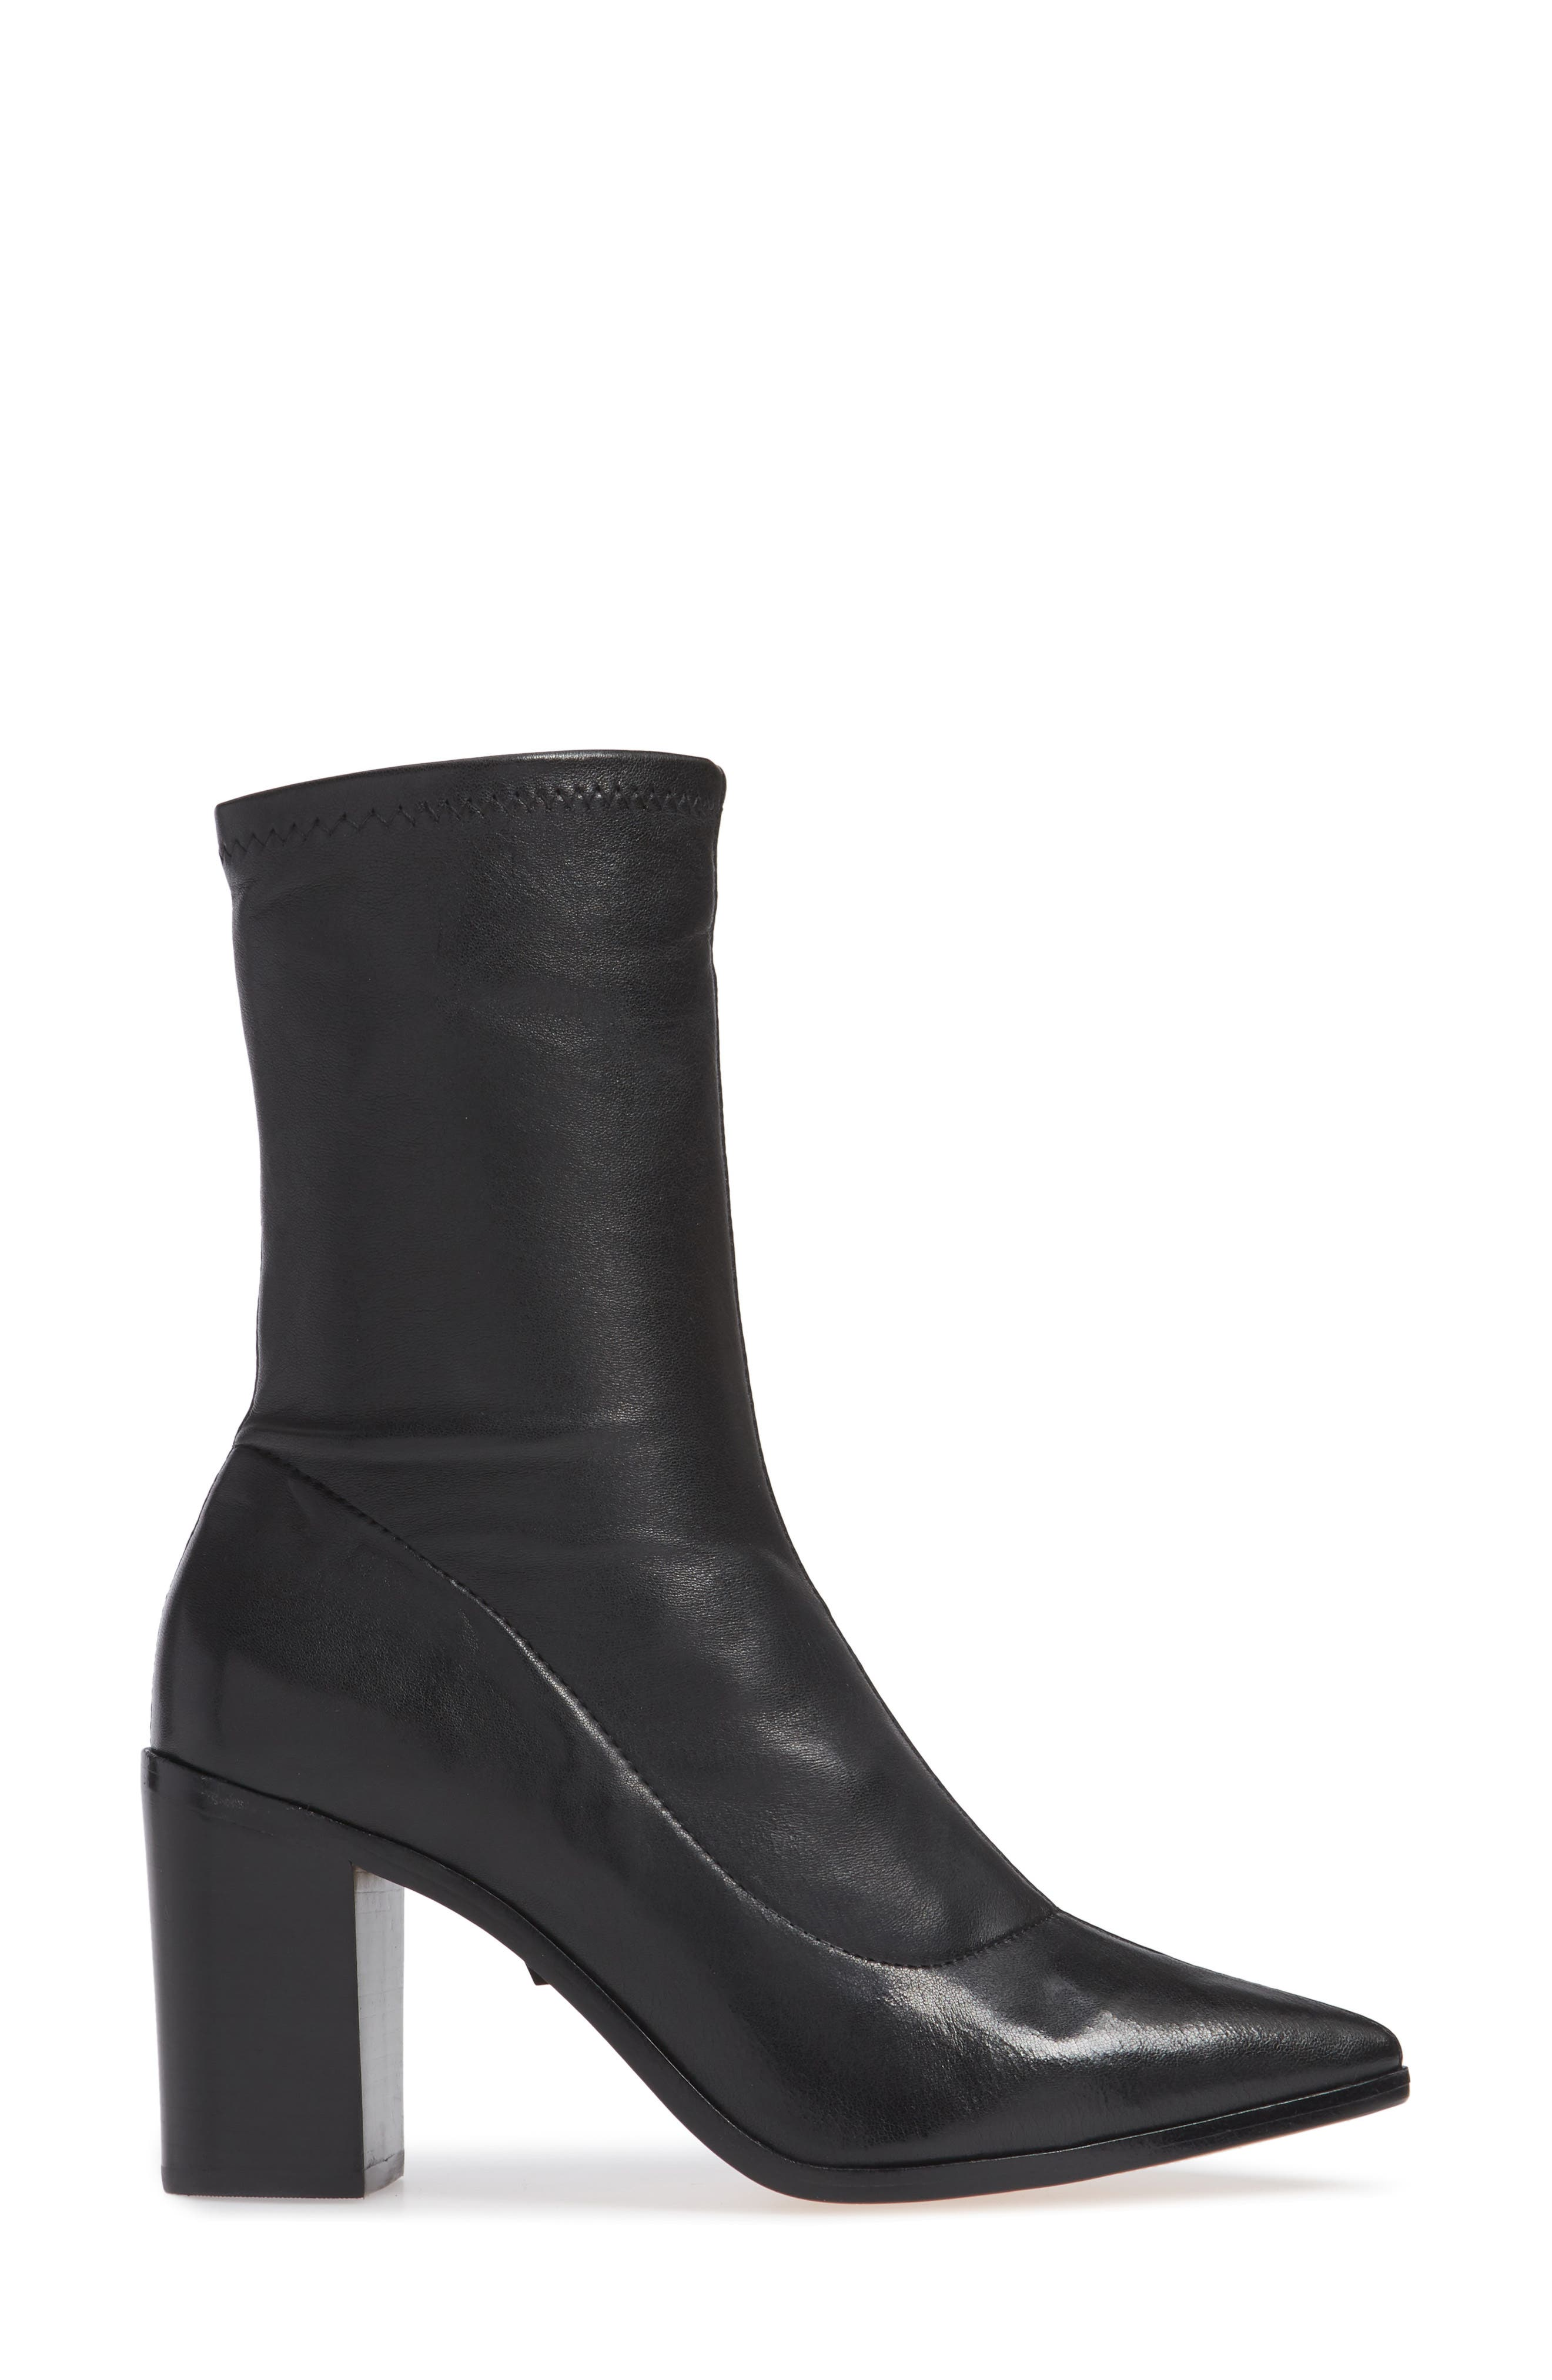 Amellie Pointy Toe Bootie,                             Alternate thumbnail 3, color,                             BLACK LEATHER